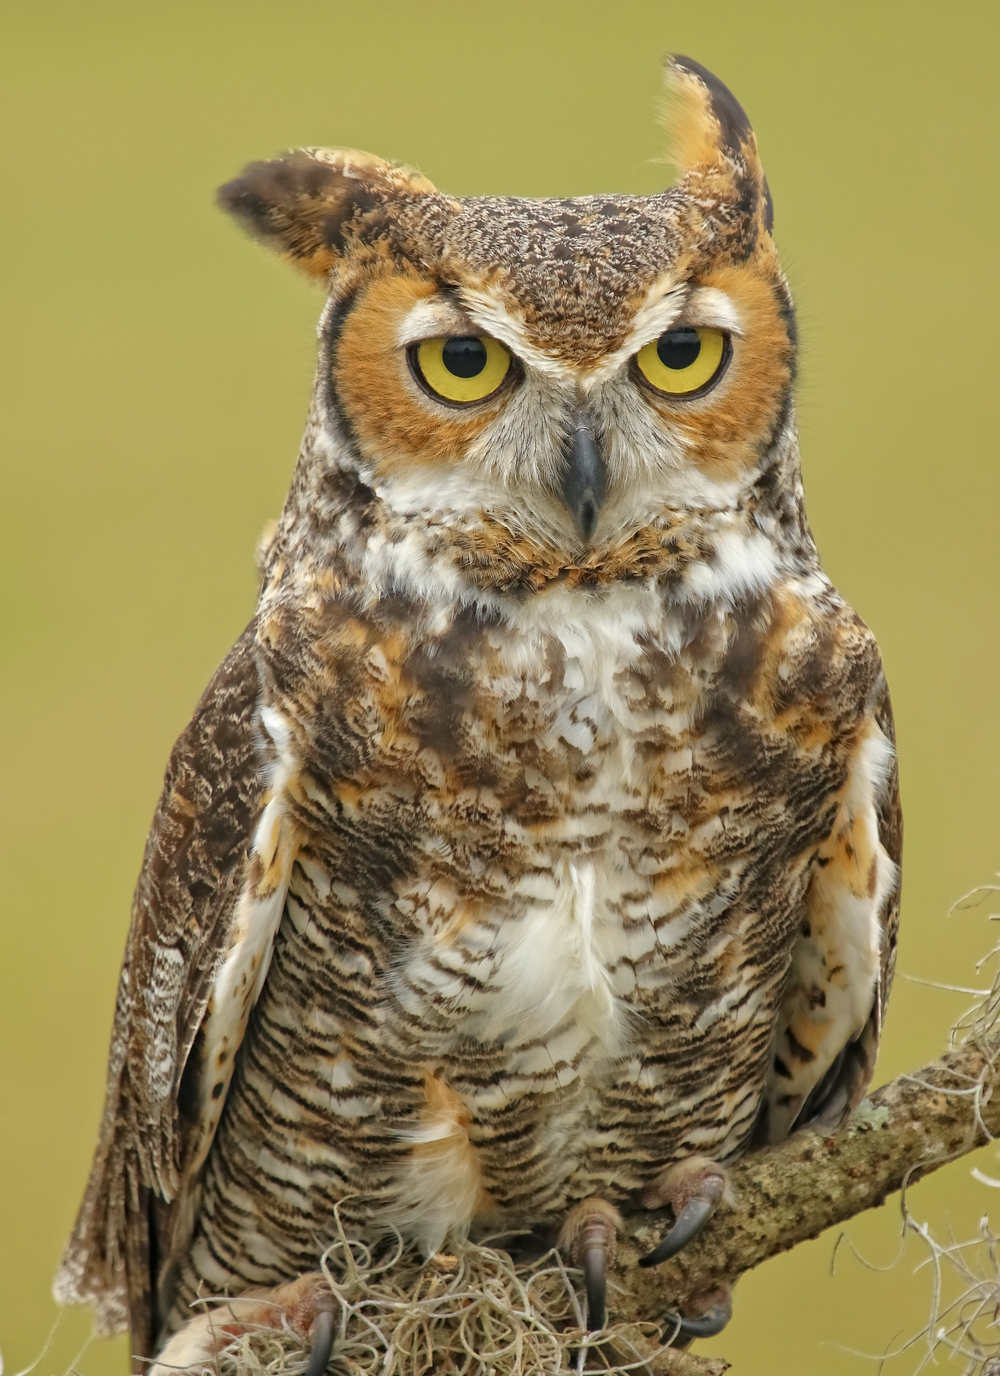 Gordon, the Great Horned Owl was my favorite bird..handsome fellow and wise too!